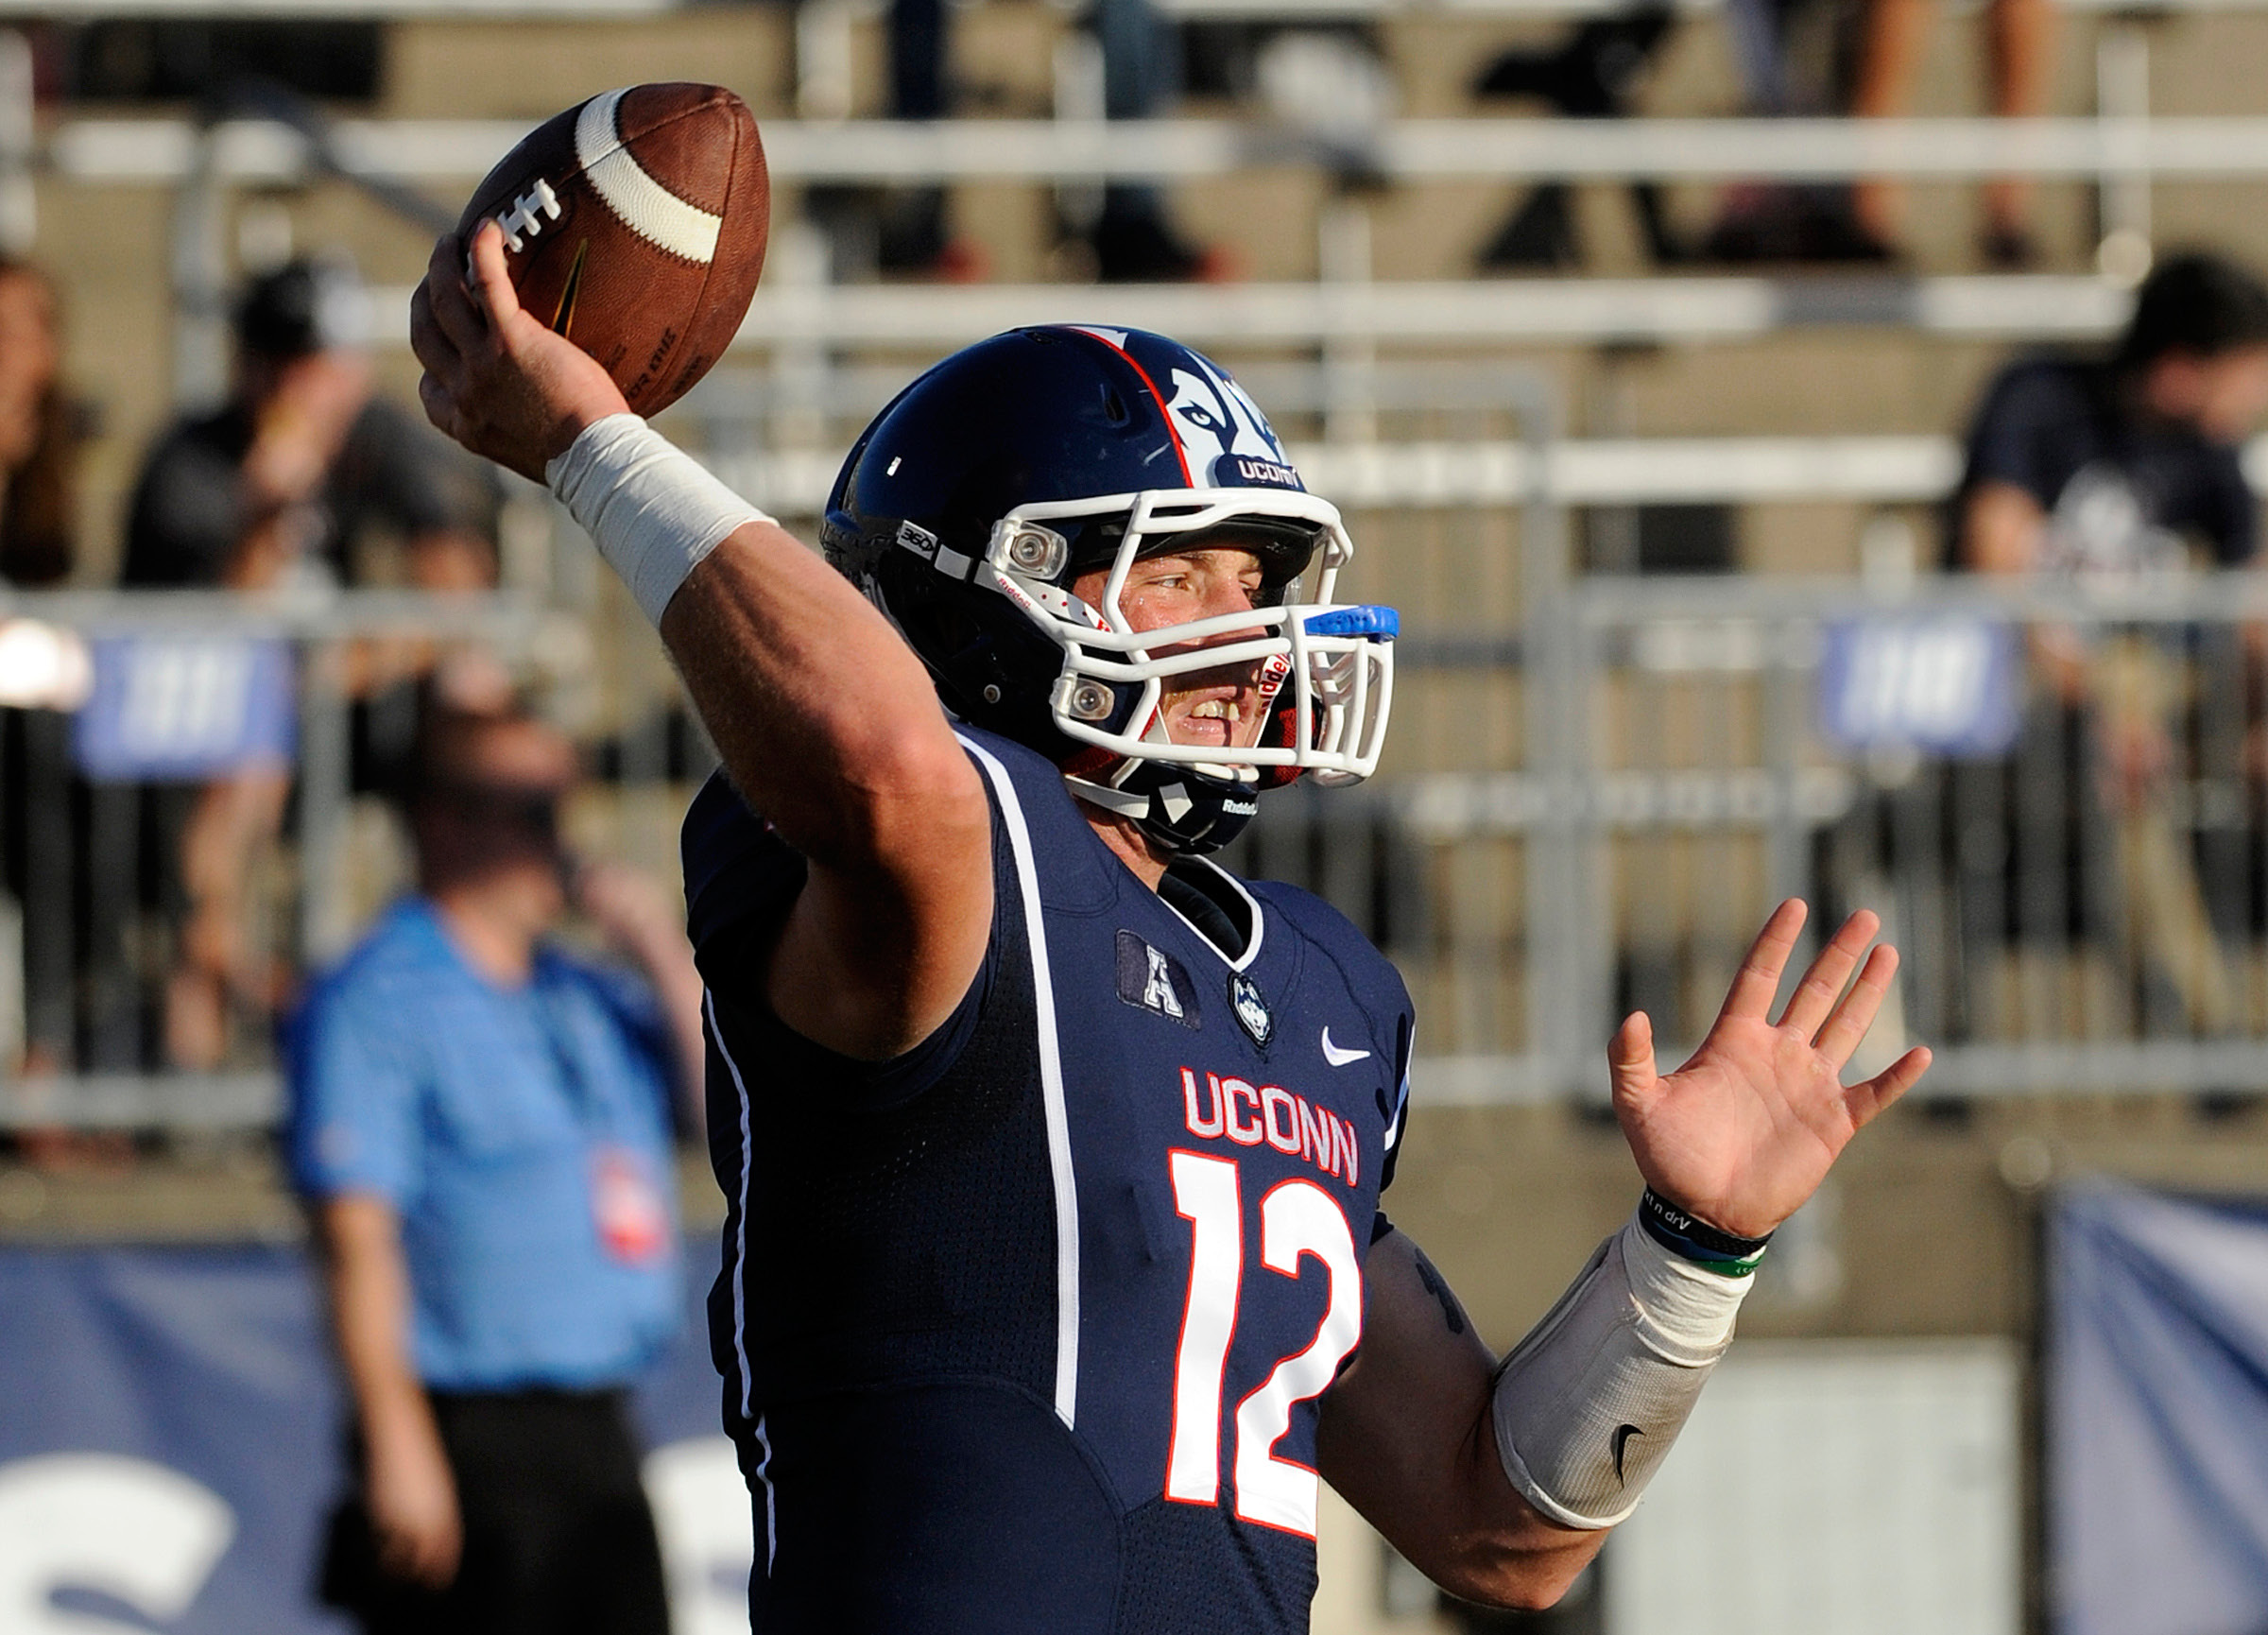 UConn quarterback Casey Cochran warms up before and August 2014 game against BYU at Rentschler Field. During the game, Cochran suffered the 13th concussion of his playing career. It was the one that prompted him to leave football. | File photo, Associated Press